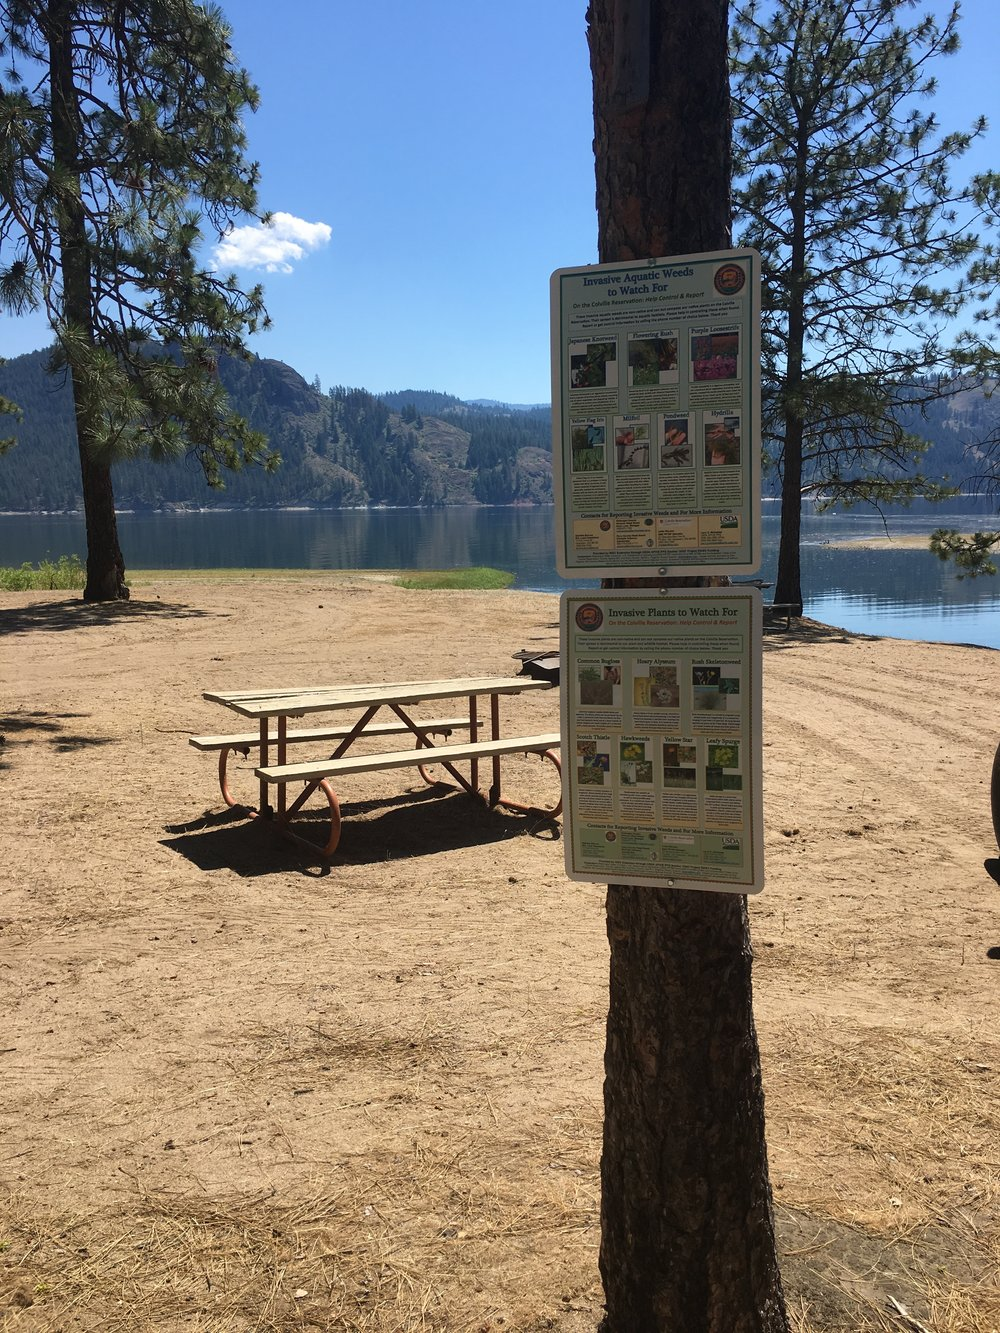 Land Operations through a grant with WSU extension, provided signage to highlight some new invader species to be on the look out for across the Reservation. Signs were installed in public areas such as campgrounds, meeting areas and boat launches.